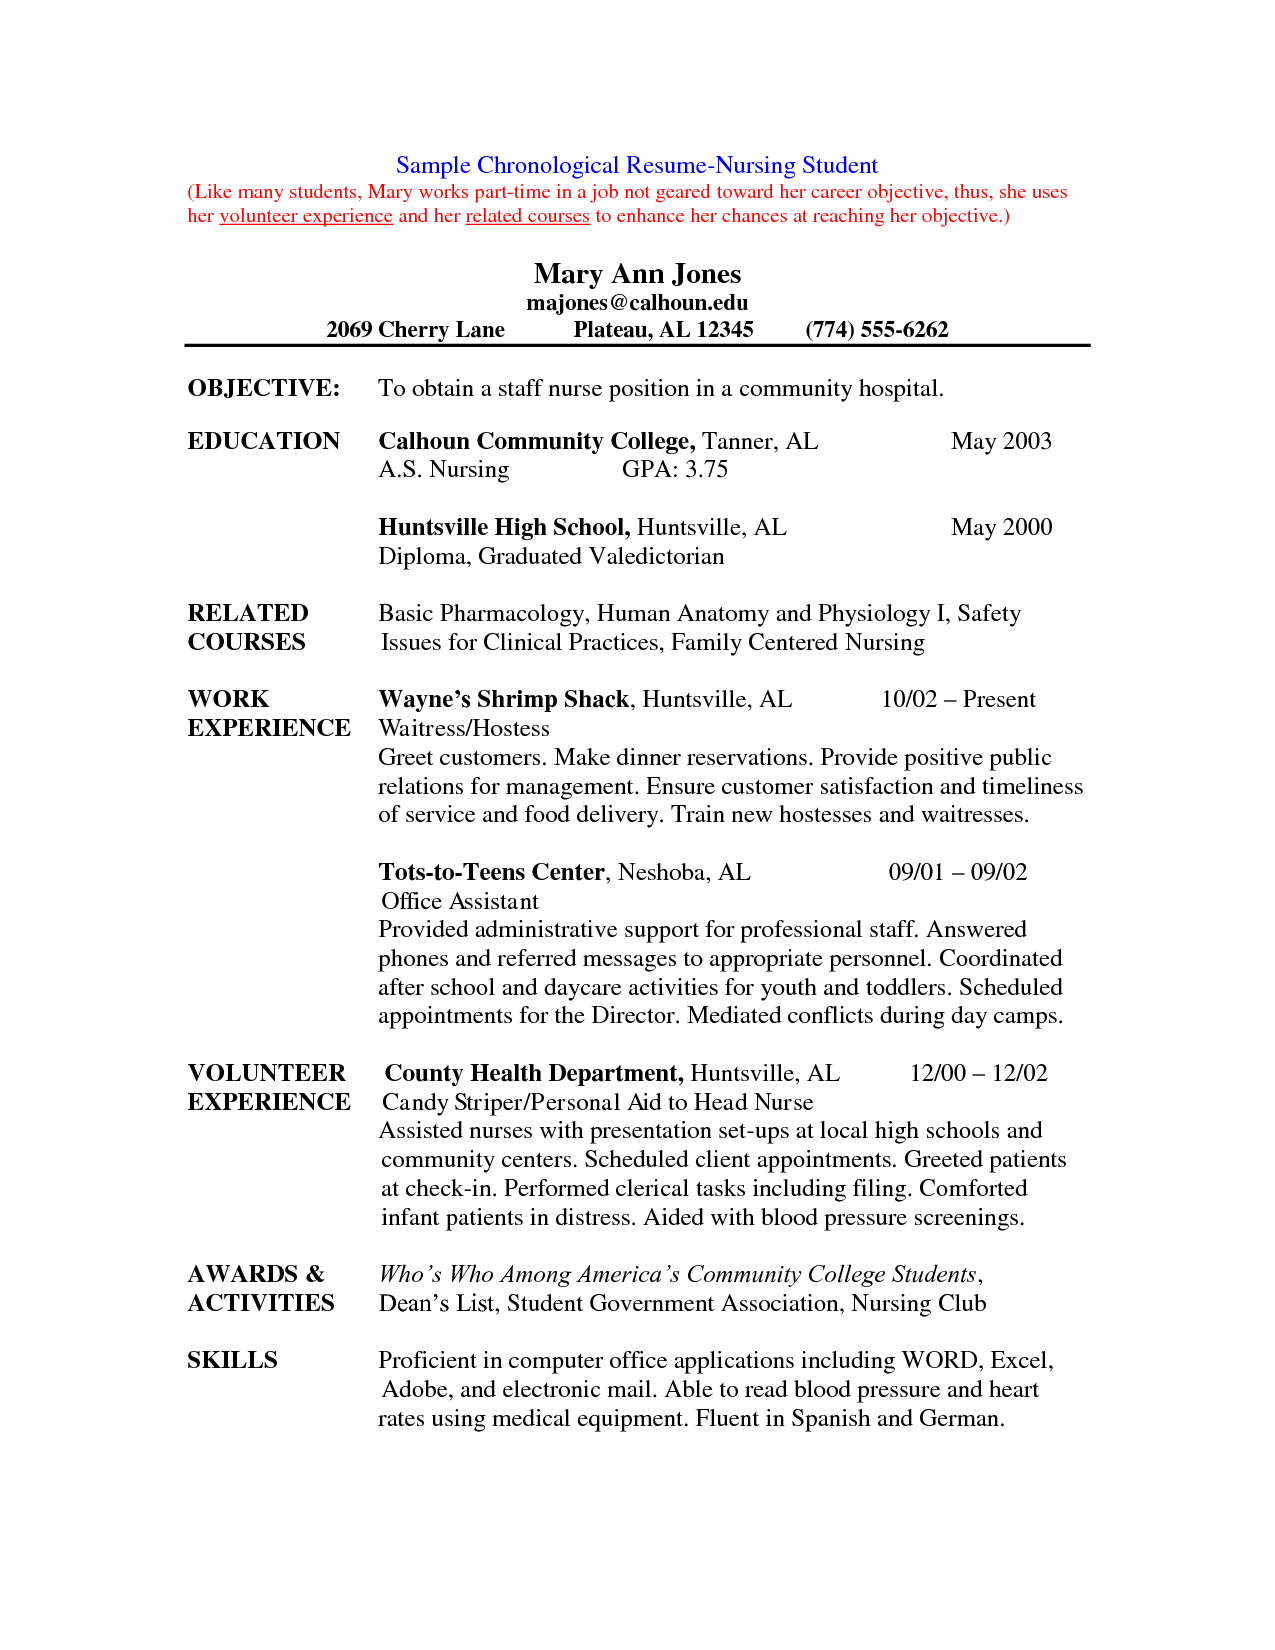 Nursing Student Resume Template HDResume Templates Cover Letter Examples  Nurse Resume Templates